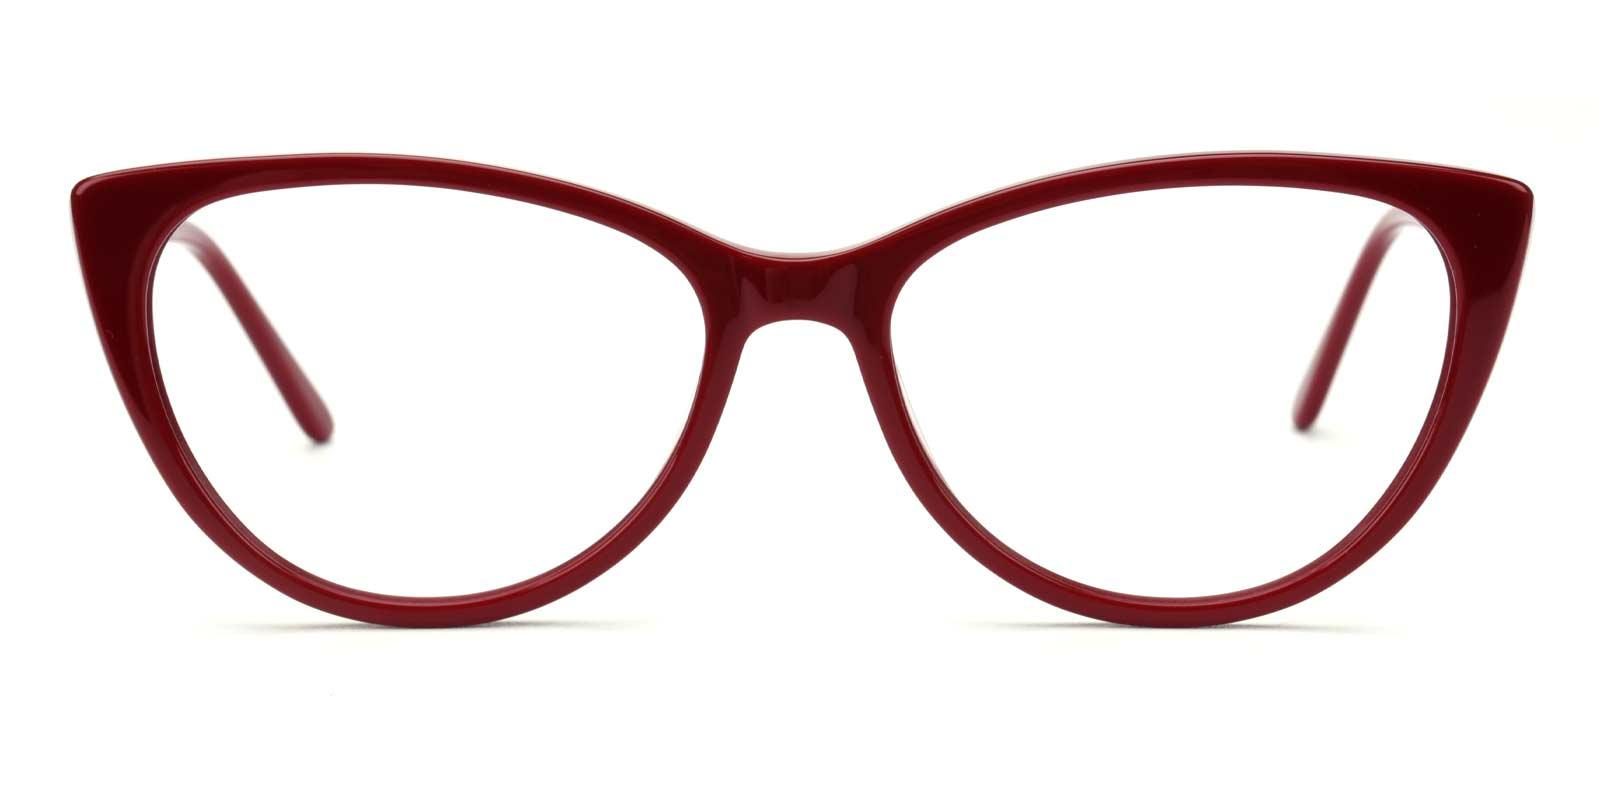 Law-Red-Cat-Acetate-Eyeglasses-additional2